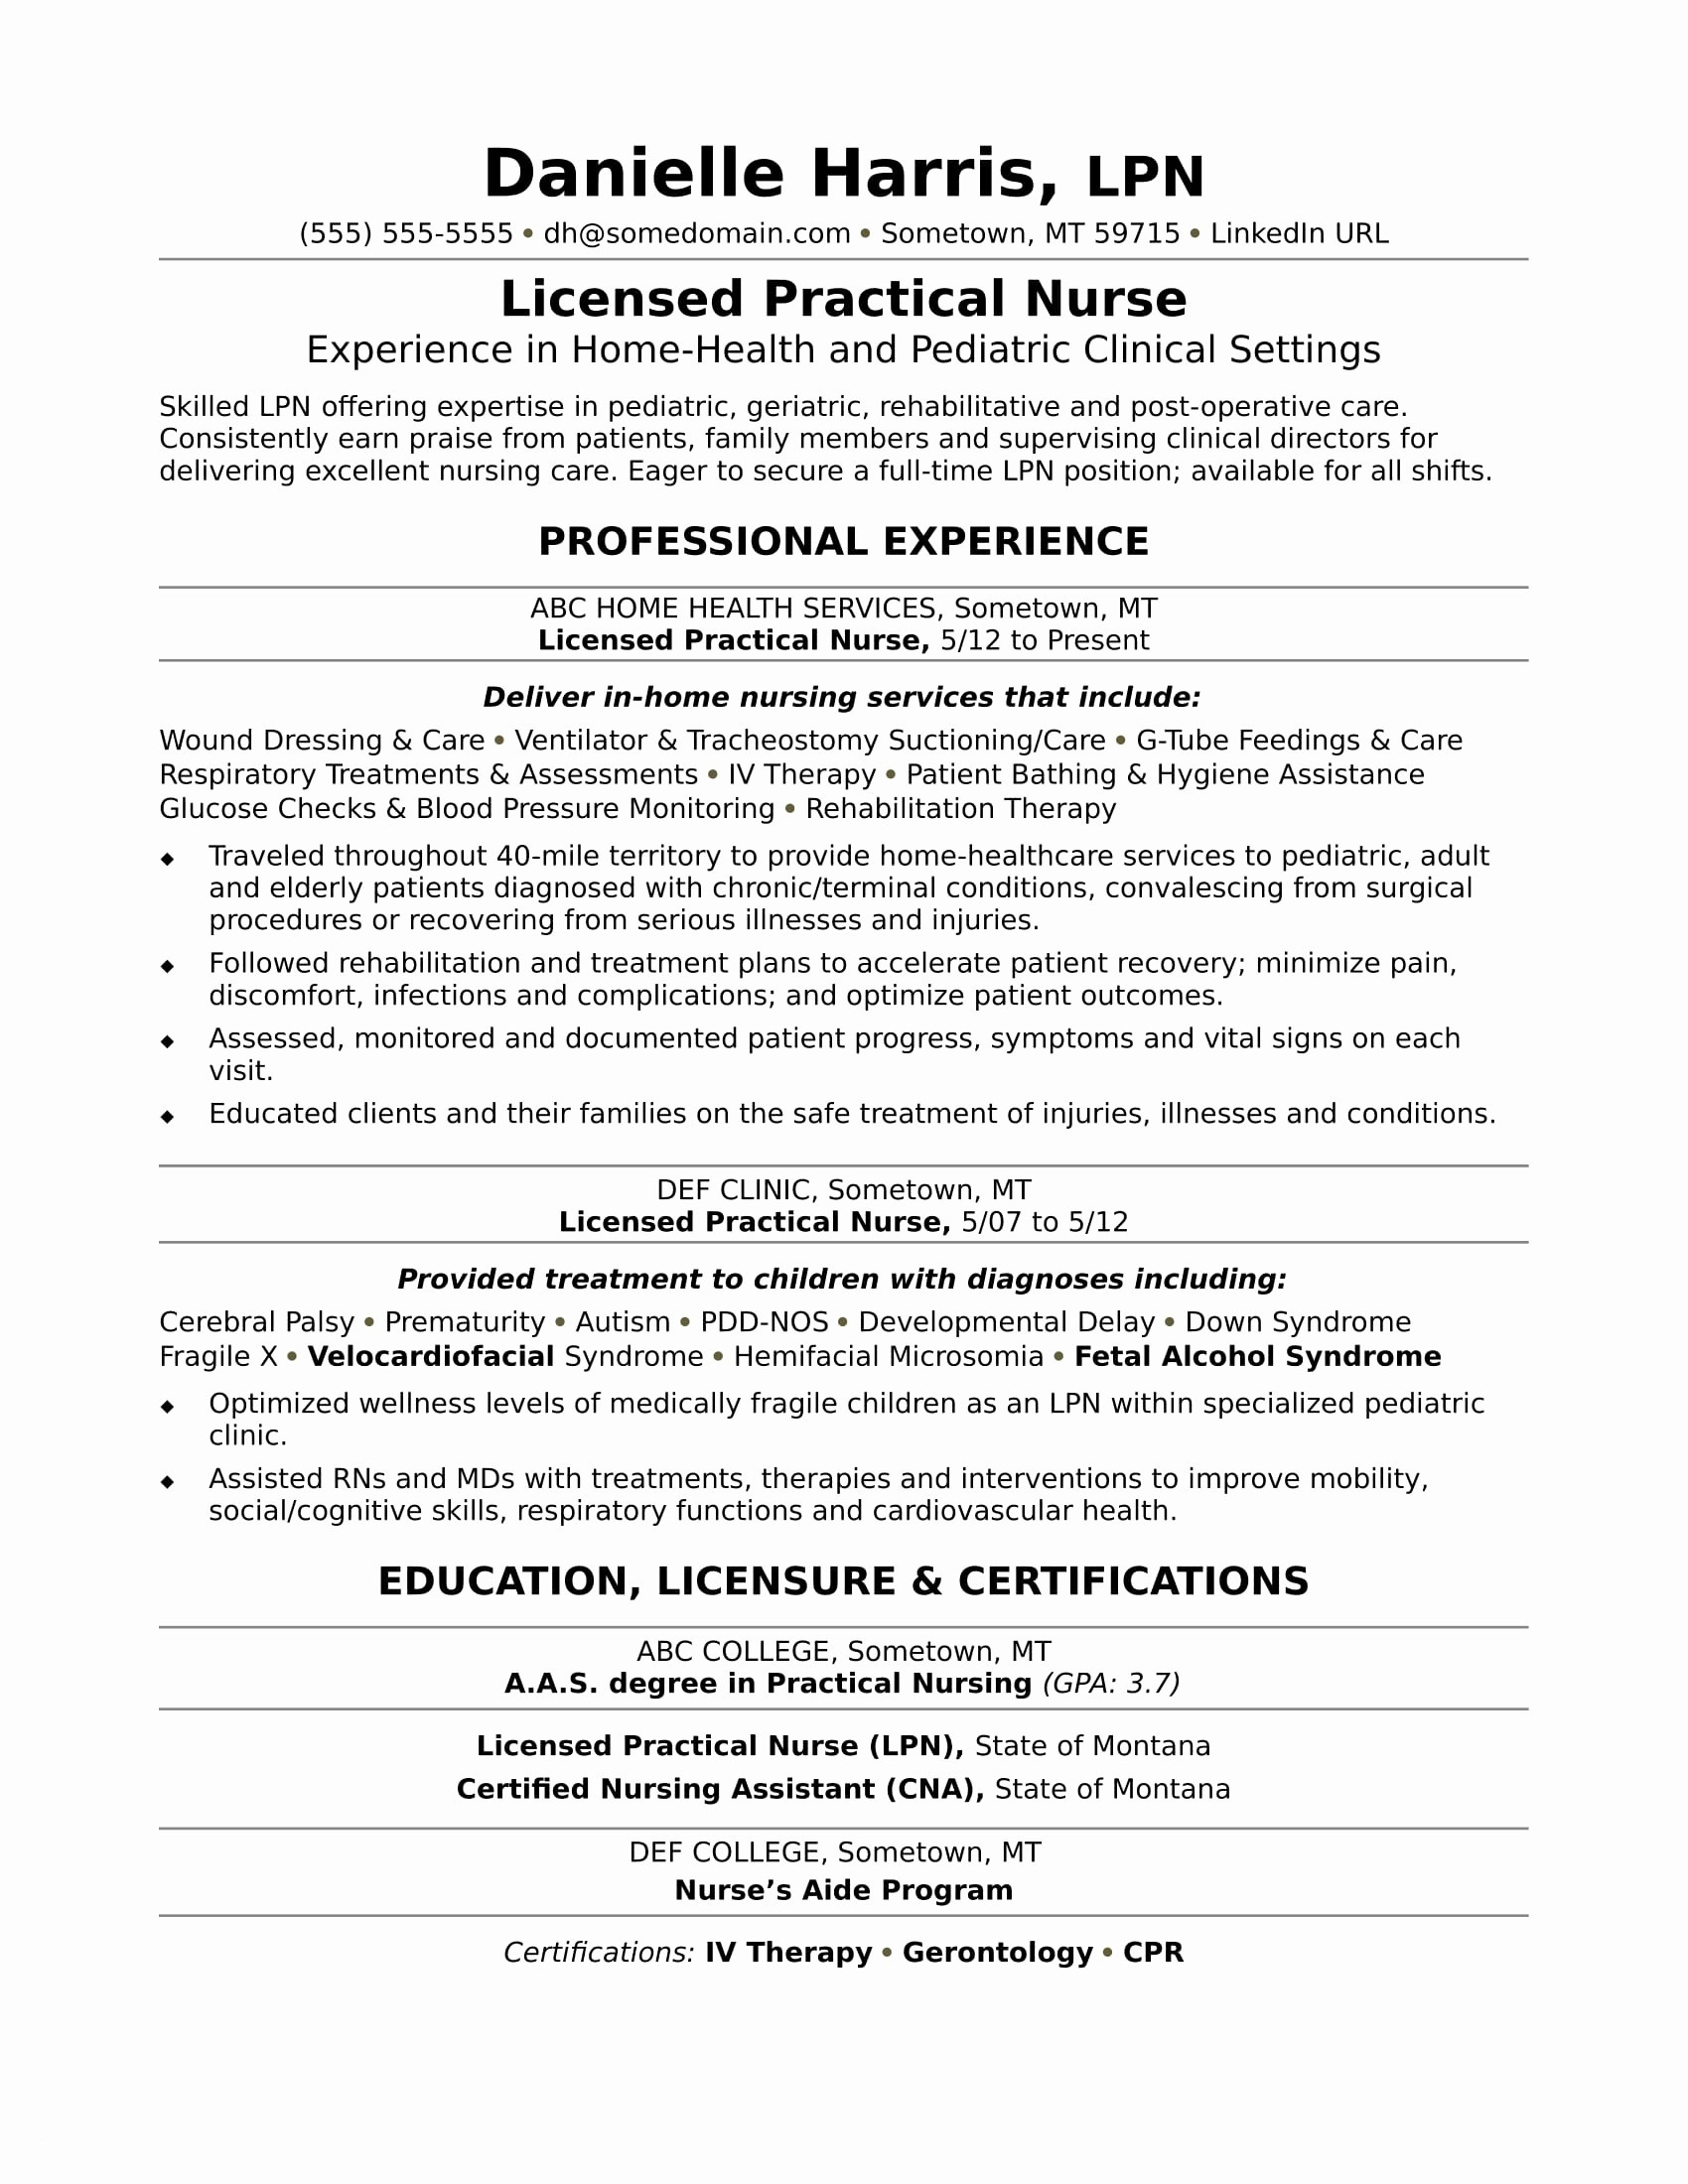 Bartender Resume Template - Bartender Resume Examples Fresh Resume for Nurse Luxury New Nurse